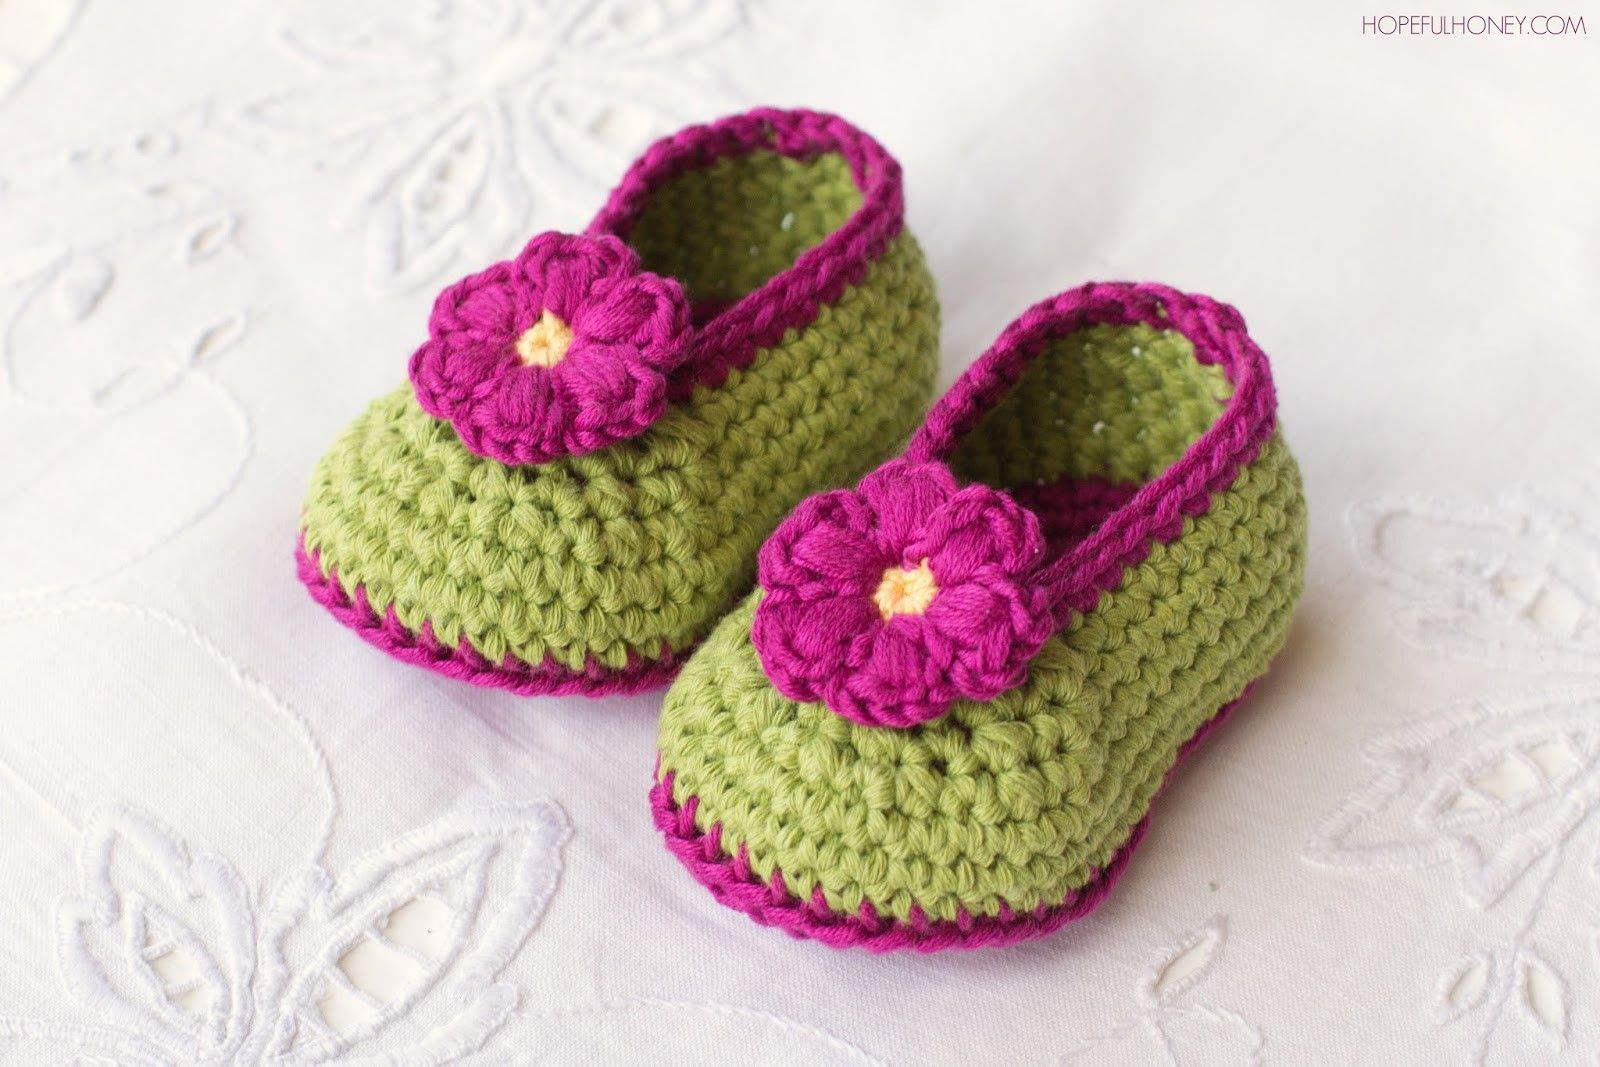 Awesome Free Crochet Pattern for toddler Slippers Free Crochet Patterns for Newborns Of Unique 40 Photos Free Crochet Patterns for Newborns #minioncrochetpatterns Awesome Free Crochet Pattern for toddler Slippers Free Crochet Patterns for Newborns Of Unique 40 Photos Free Crochet Patterns for Newborns #minioncrochetpatterns Awesome Free Crochet Pattern for toddler Slippers Free Crochet Patterns for Newborns Of Unique 40 Photos Free Crochet Patterns for Newborns #minioncrochetpatterns Awesome Fre #minioncrochetpatterns